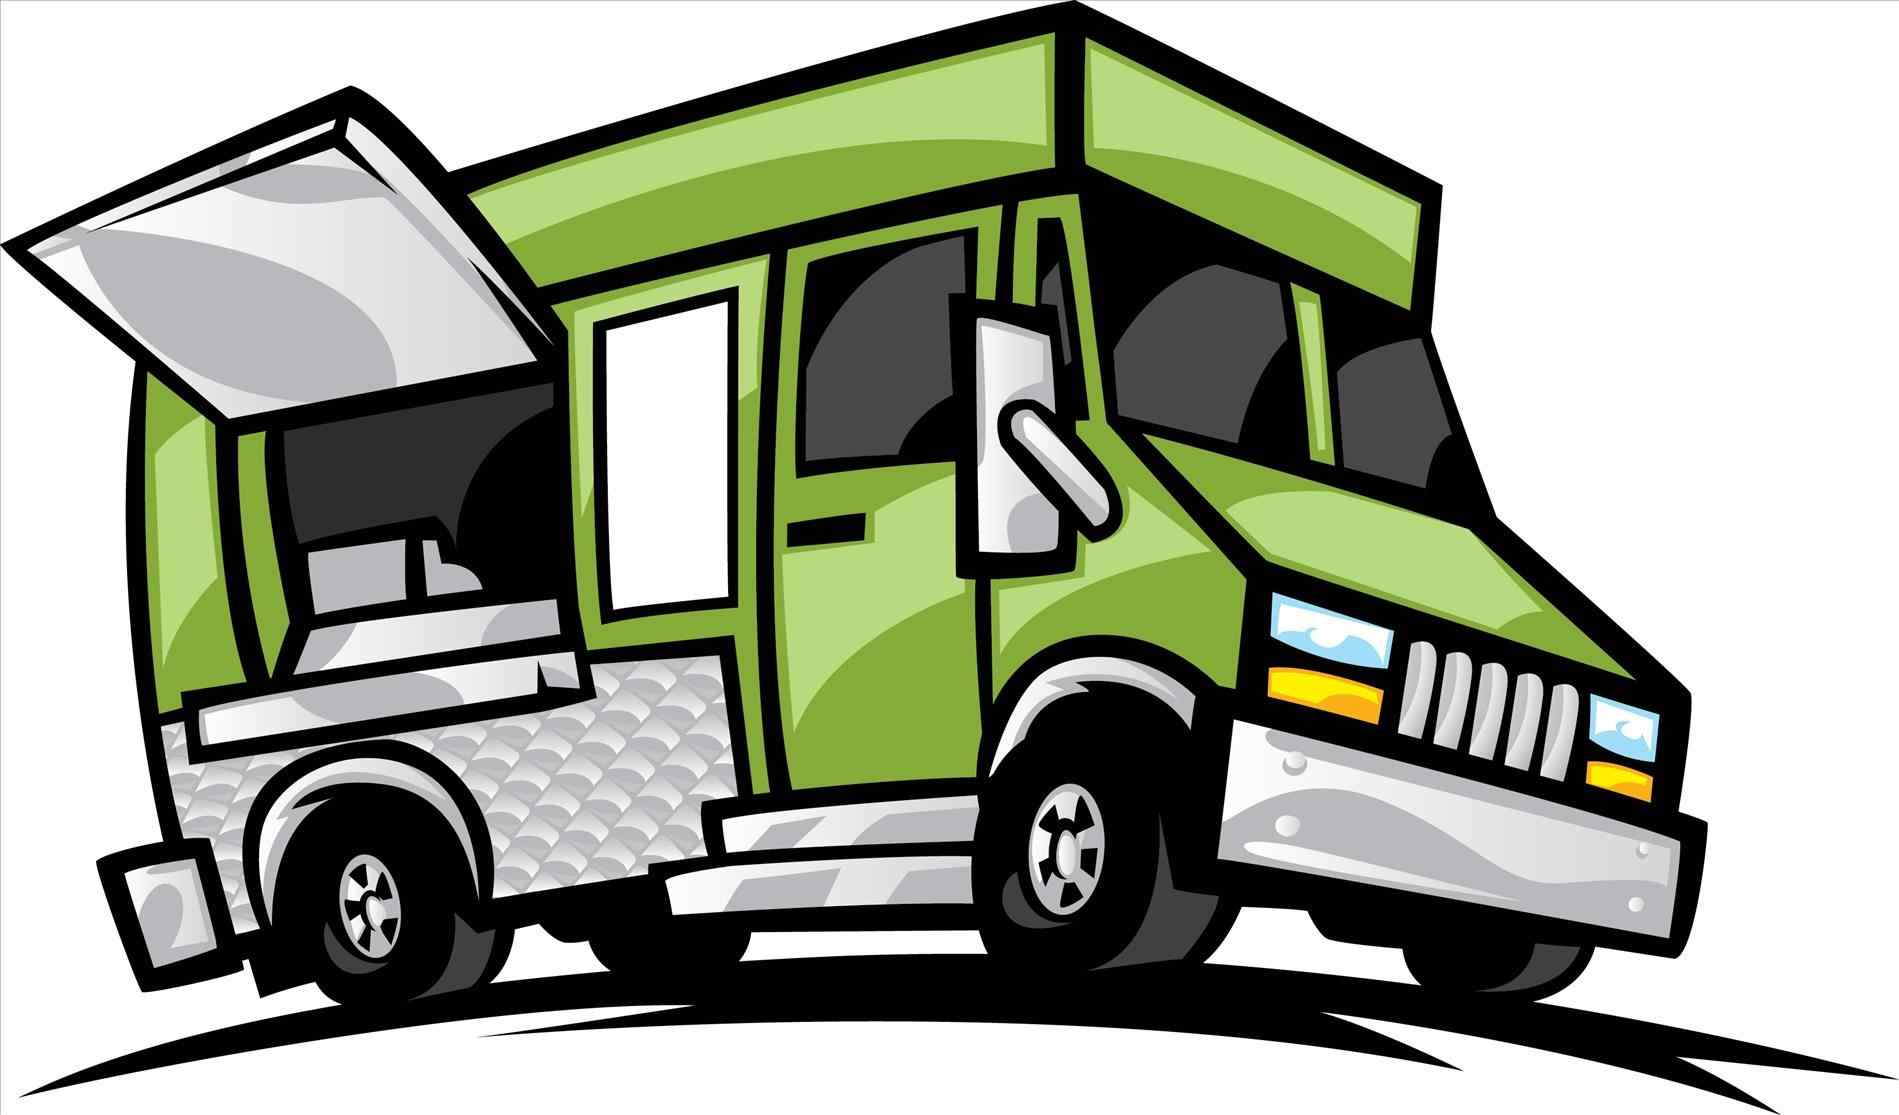 1899x1115 Images Collection Of Color S S S Food Truck Clipart S